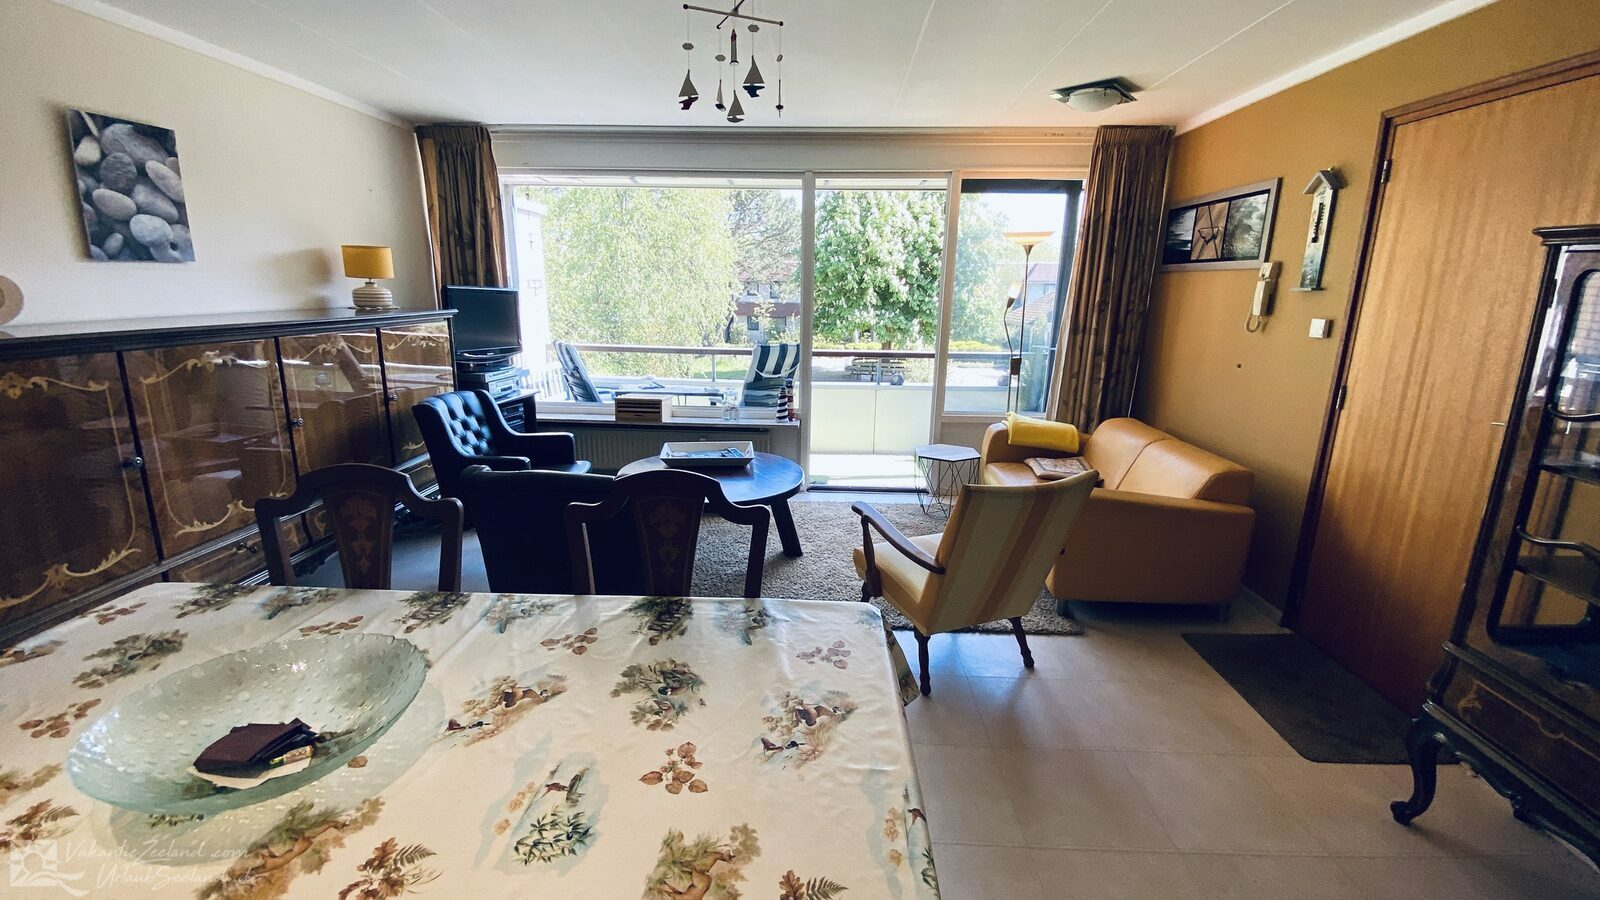 VZ291 Appartement Burgh-Haamstede